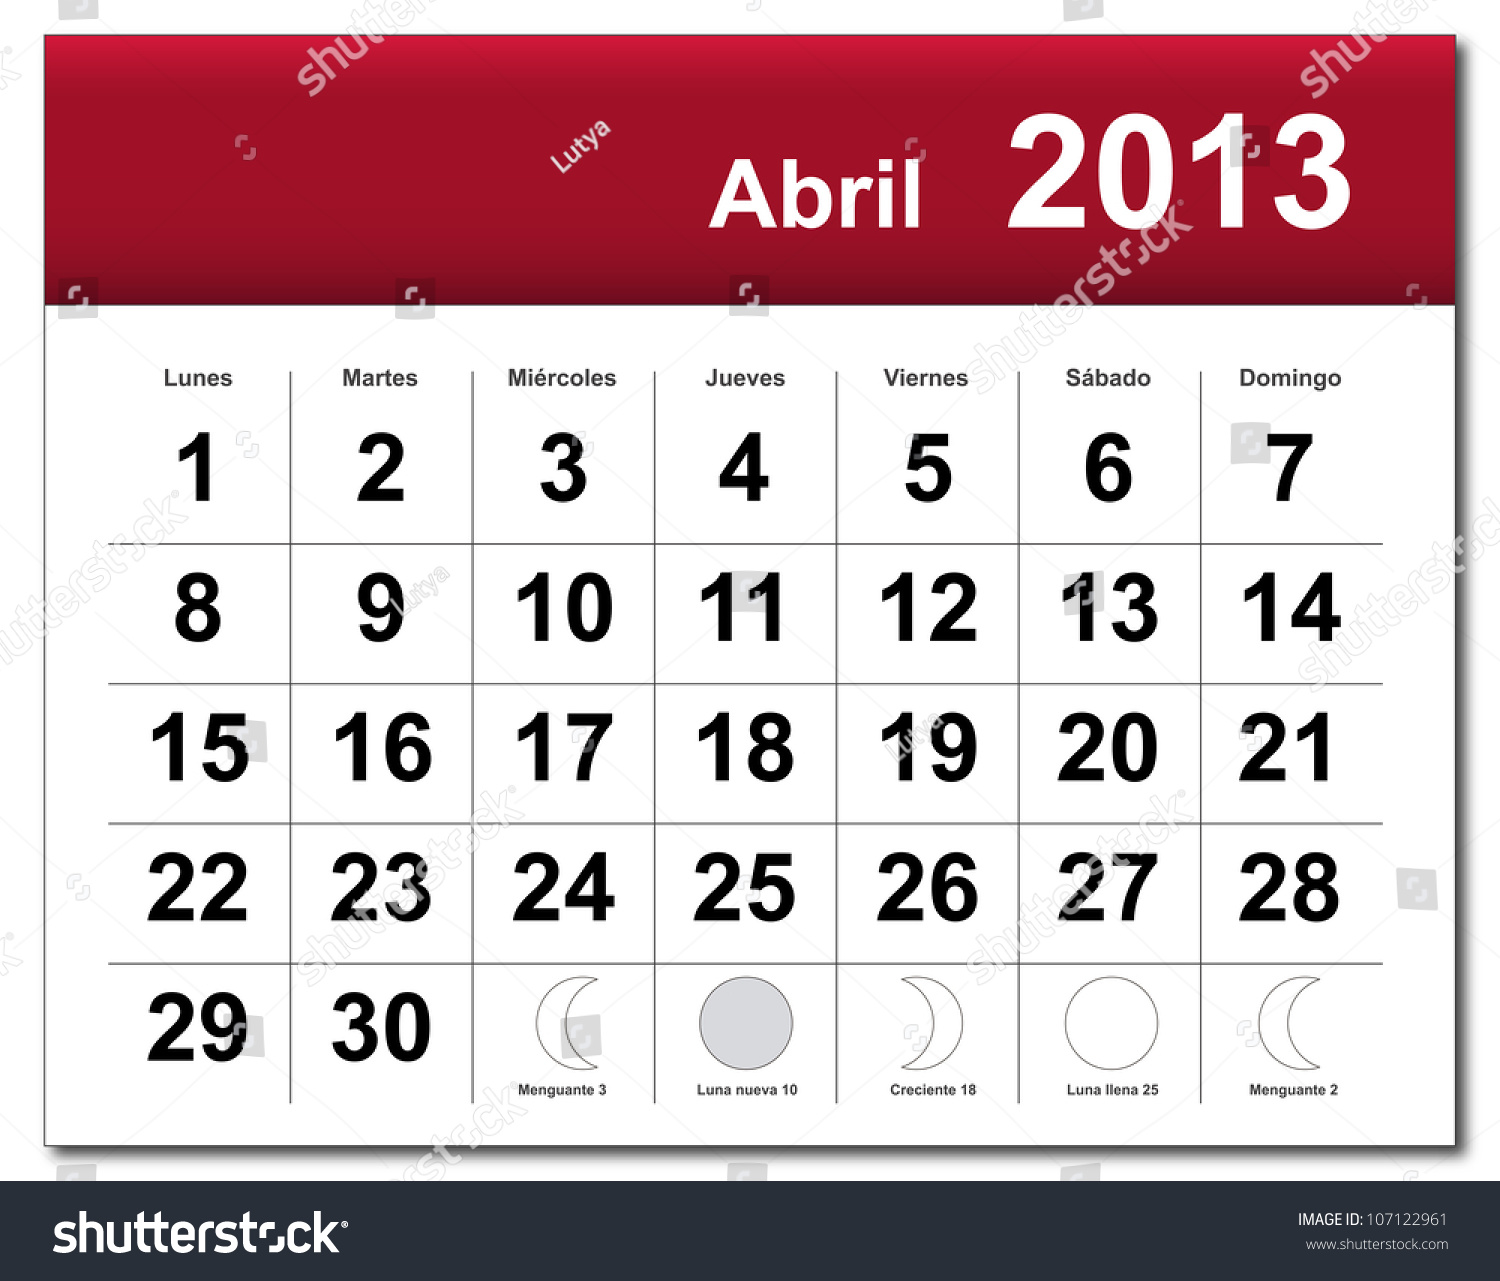 Spanish April Calendar : Spanish version april calendar calendario stock